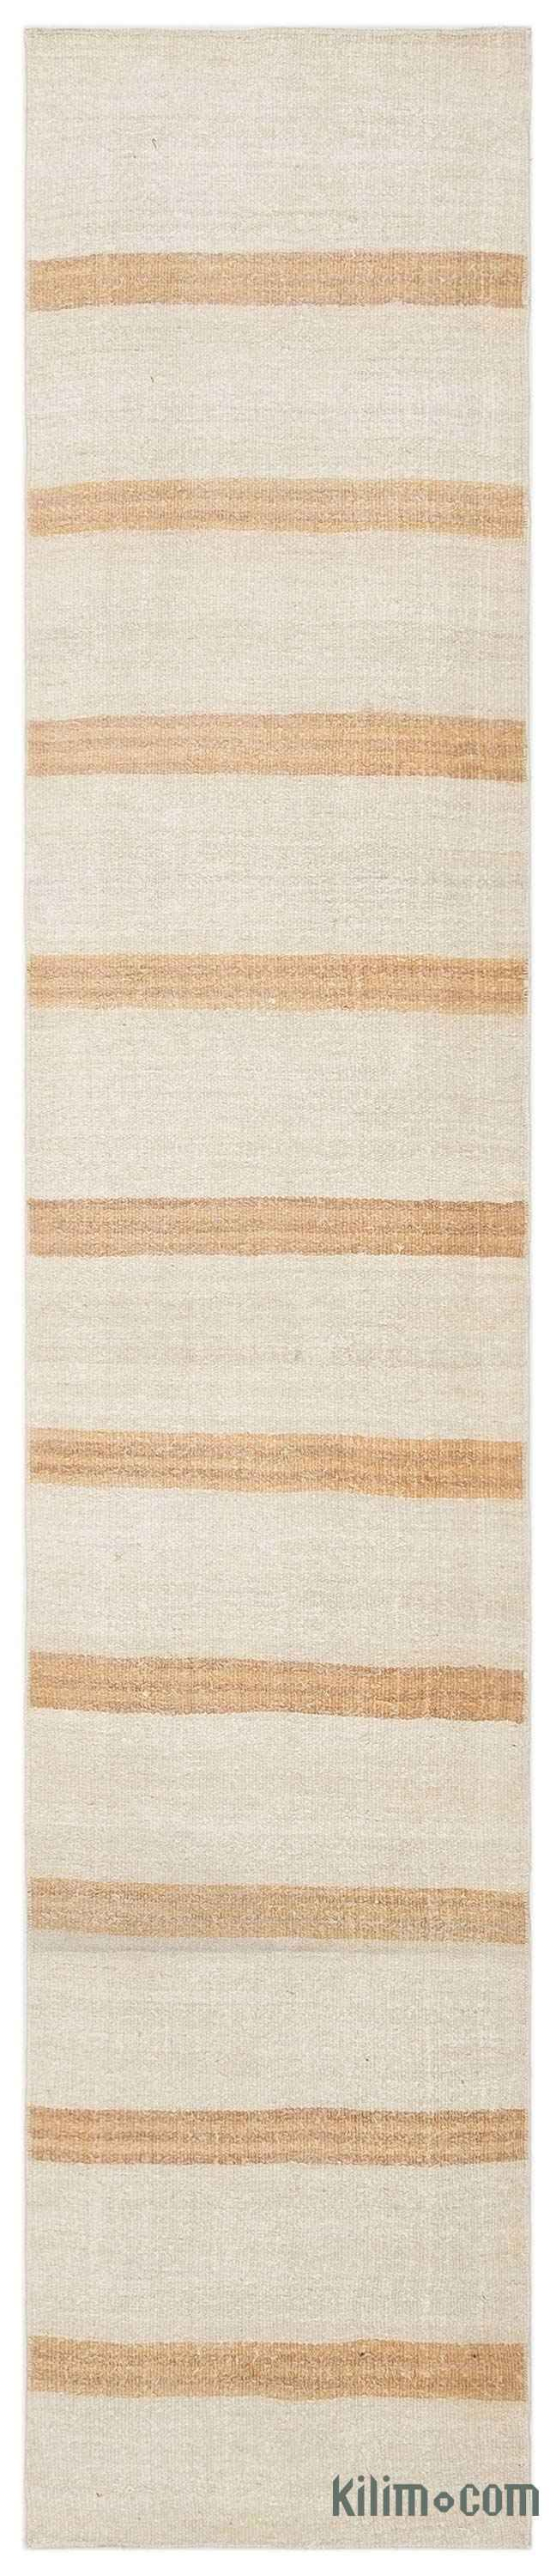 Vintage kilim rug handwoven in Turkey with hemp fiber. Turkish villagers produced hemp stalk until the 1960's when its production was prohibited together with its cousin, medical cannabis. These Anatolian rugs with modern appeal were mostly woven for drying fruits, to store wheat or as floor covers. This minimalistic beige rug measures 10'1'' x 2' (307 cm x 61 cm).We professionally clean all our vintage rugs, but stains are a reminder of the rugs' history.